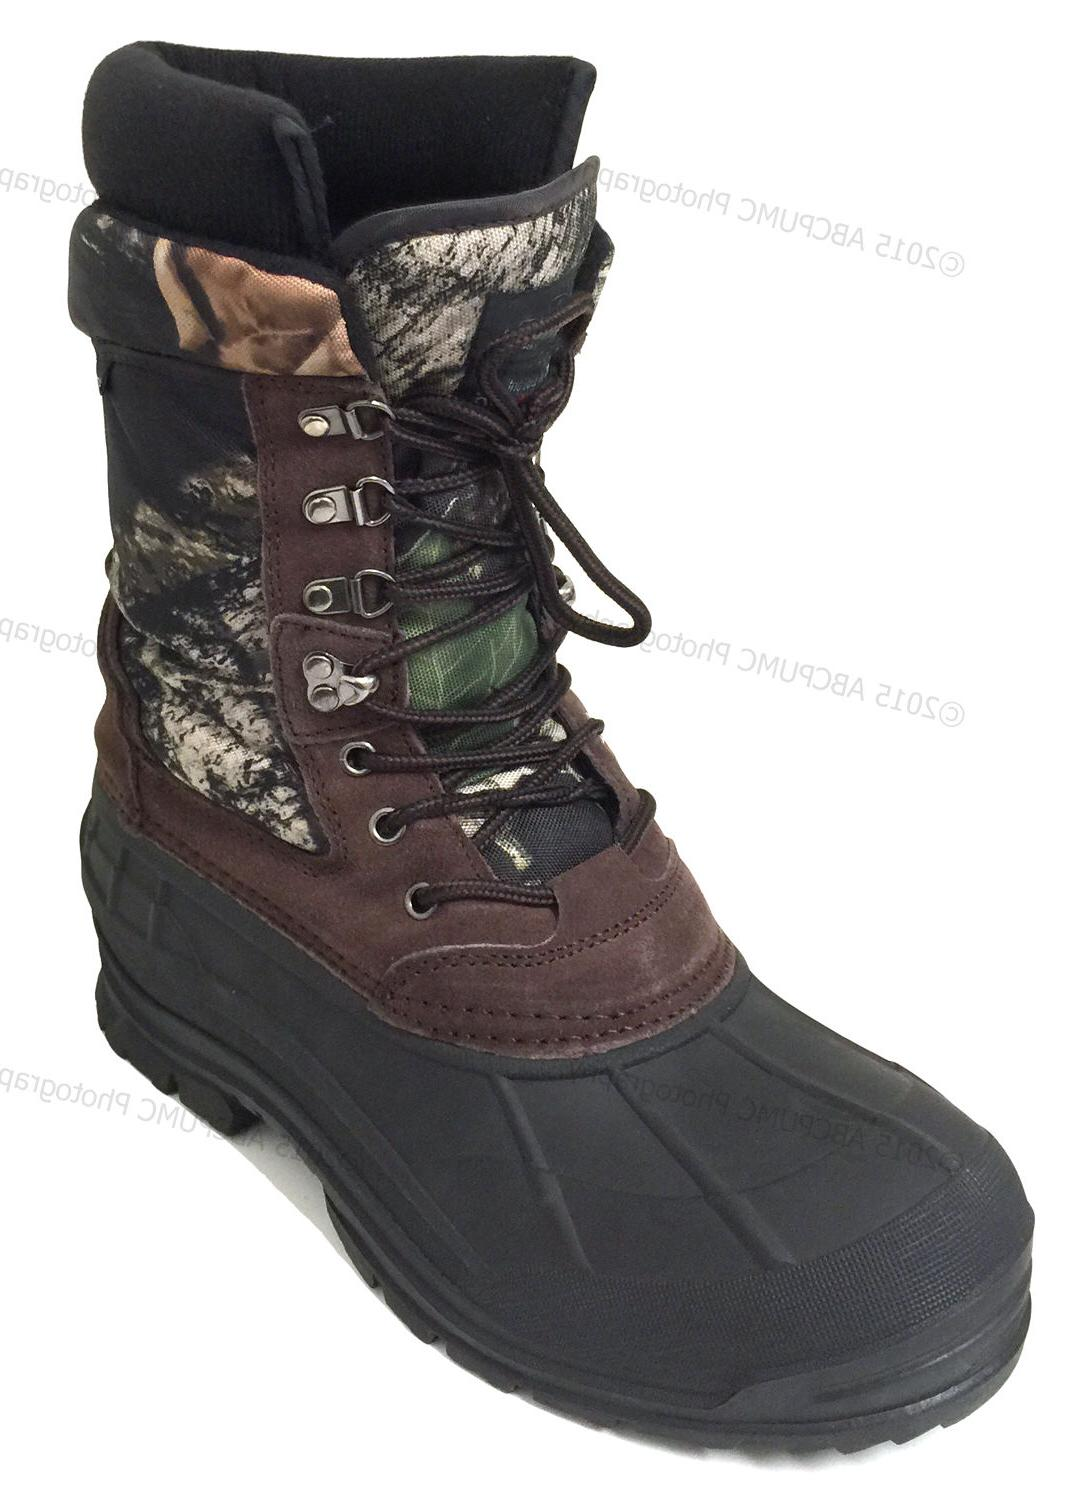 mens winter snow boots camouflage 10 leather